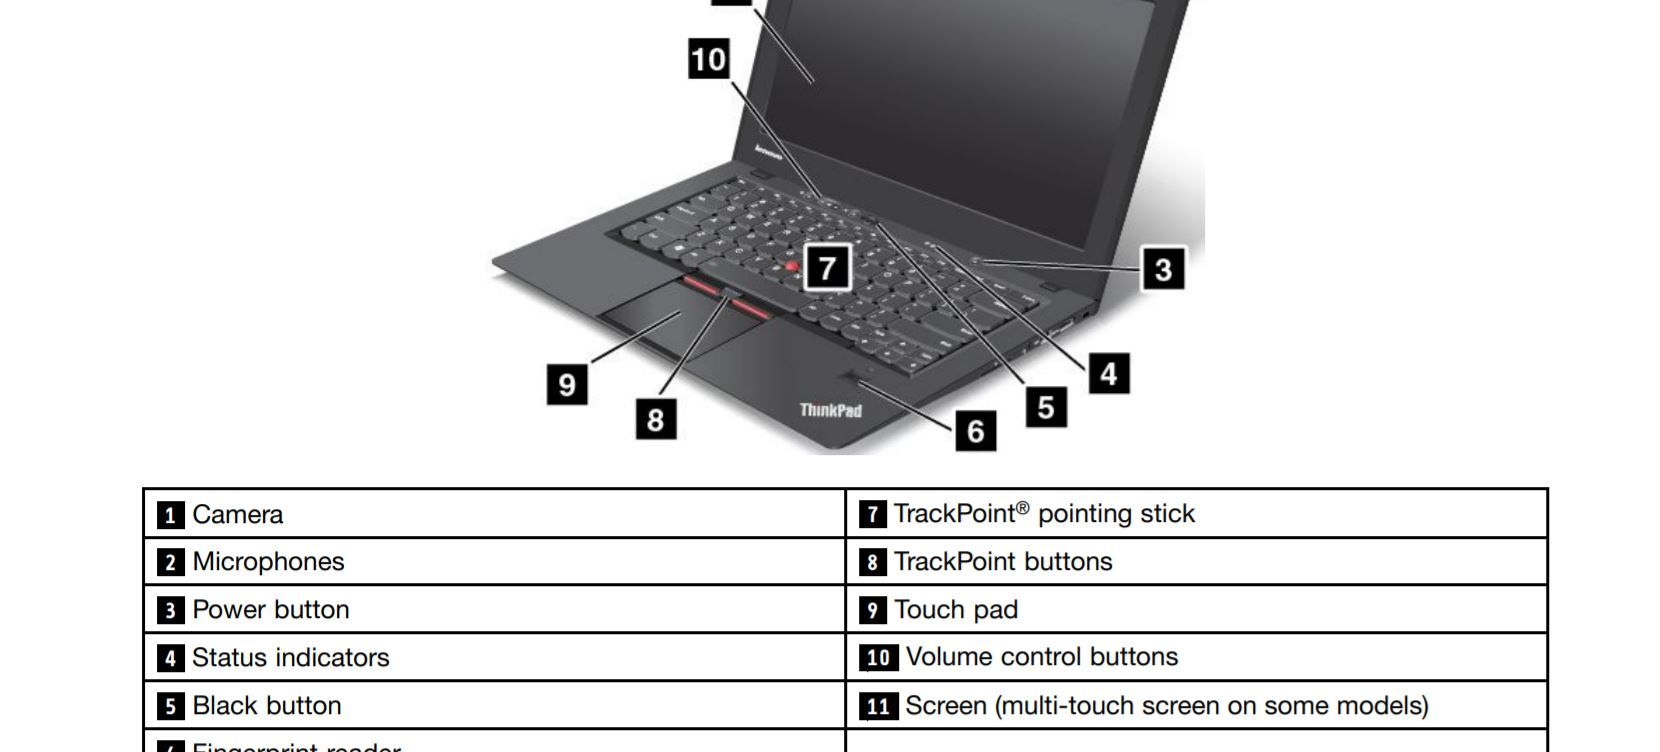 Mute Mic On Lenovo Thinkpad